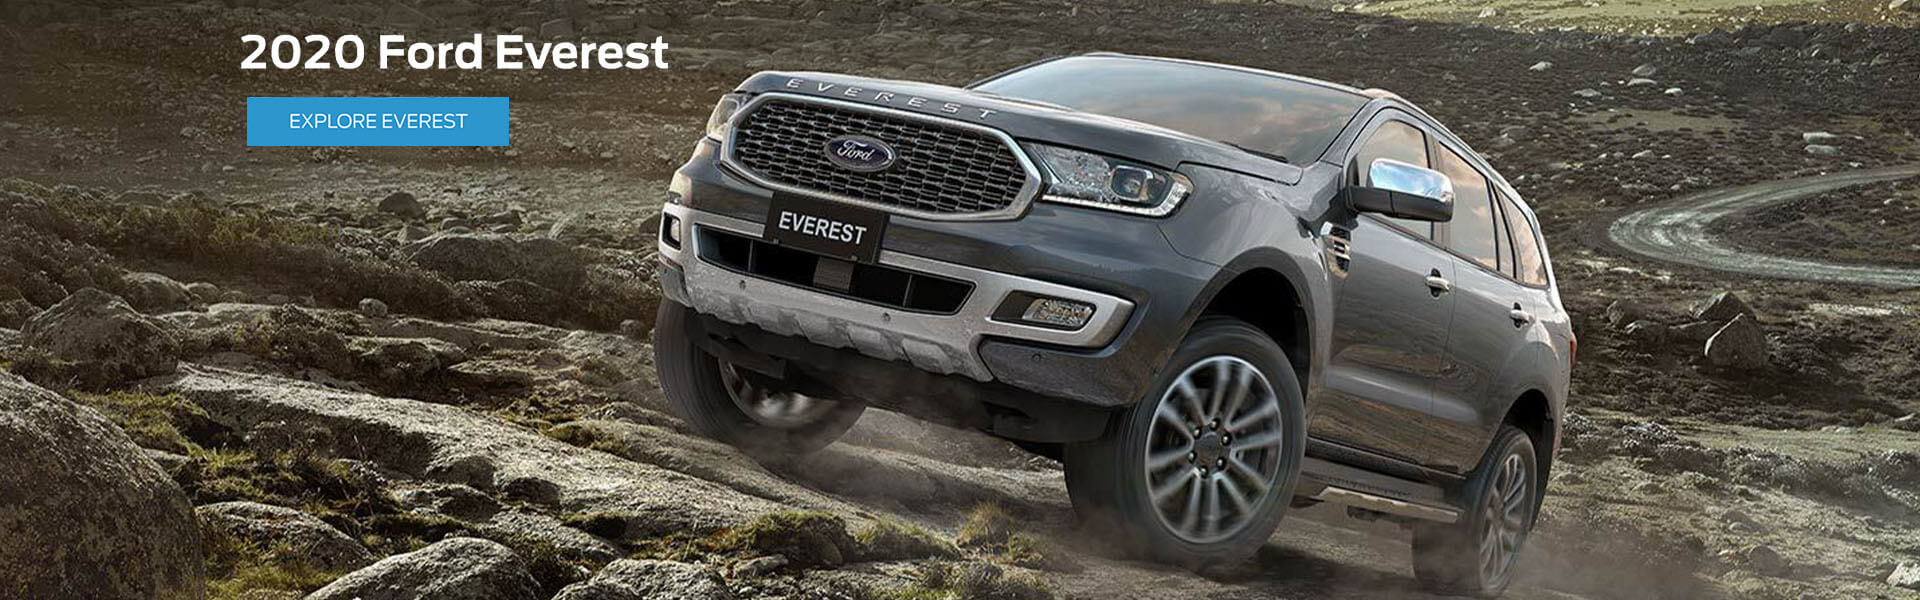 See the full range of Ford Everest models at Alpine Ford